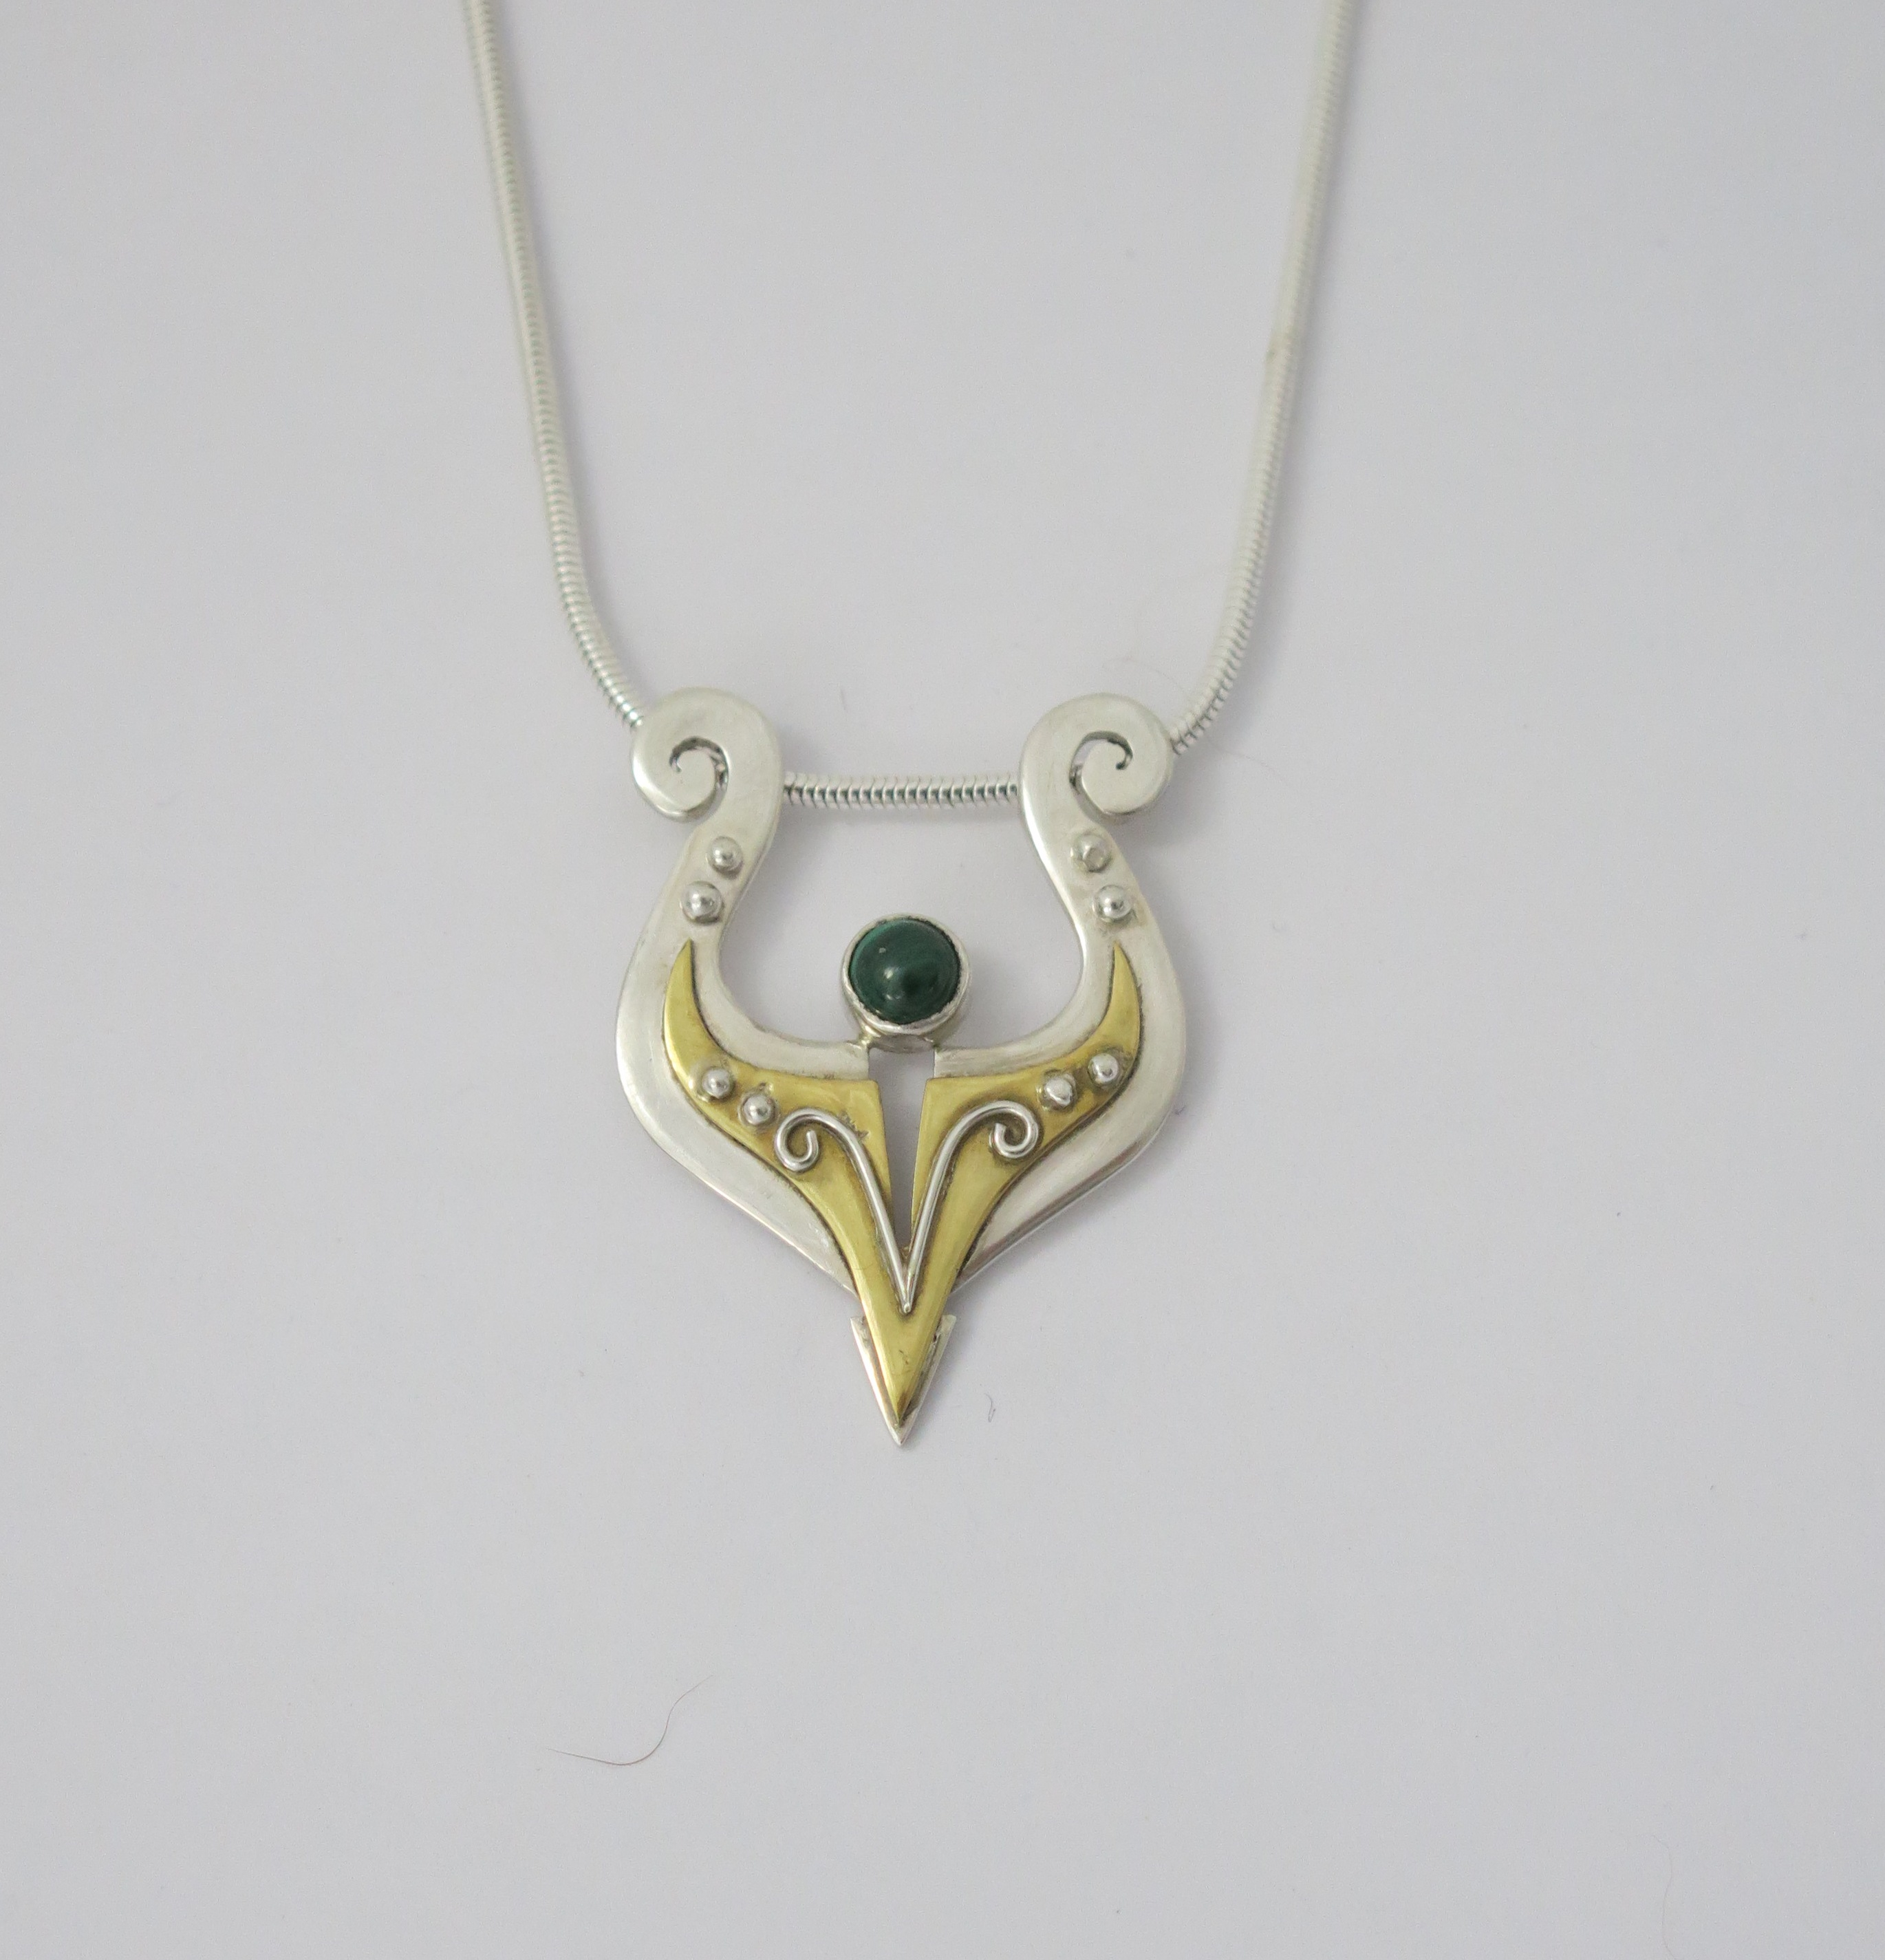 Silver and brass with malachite